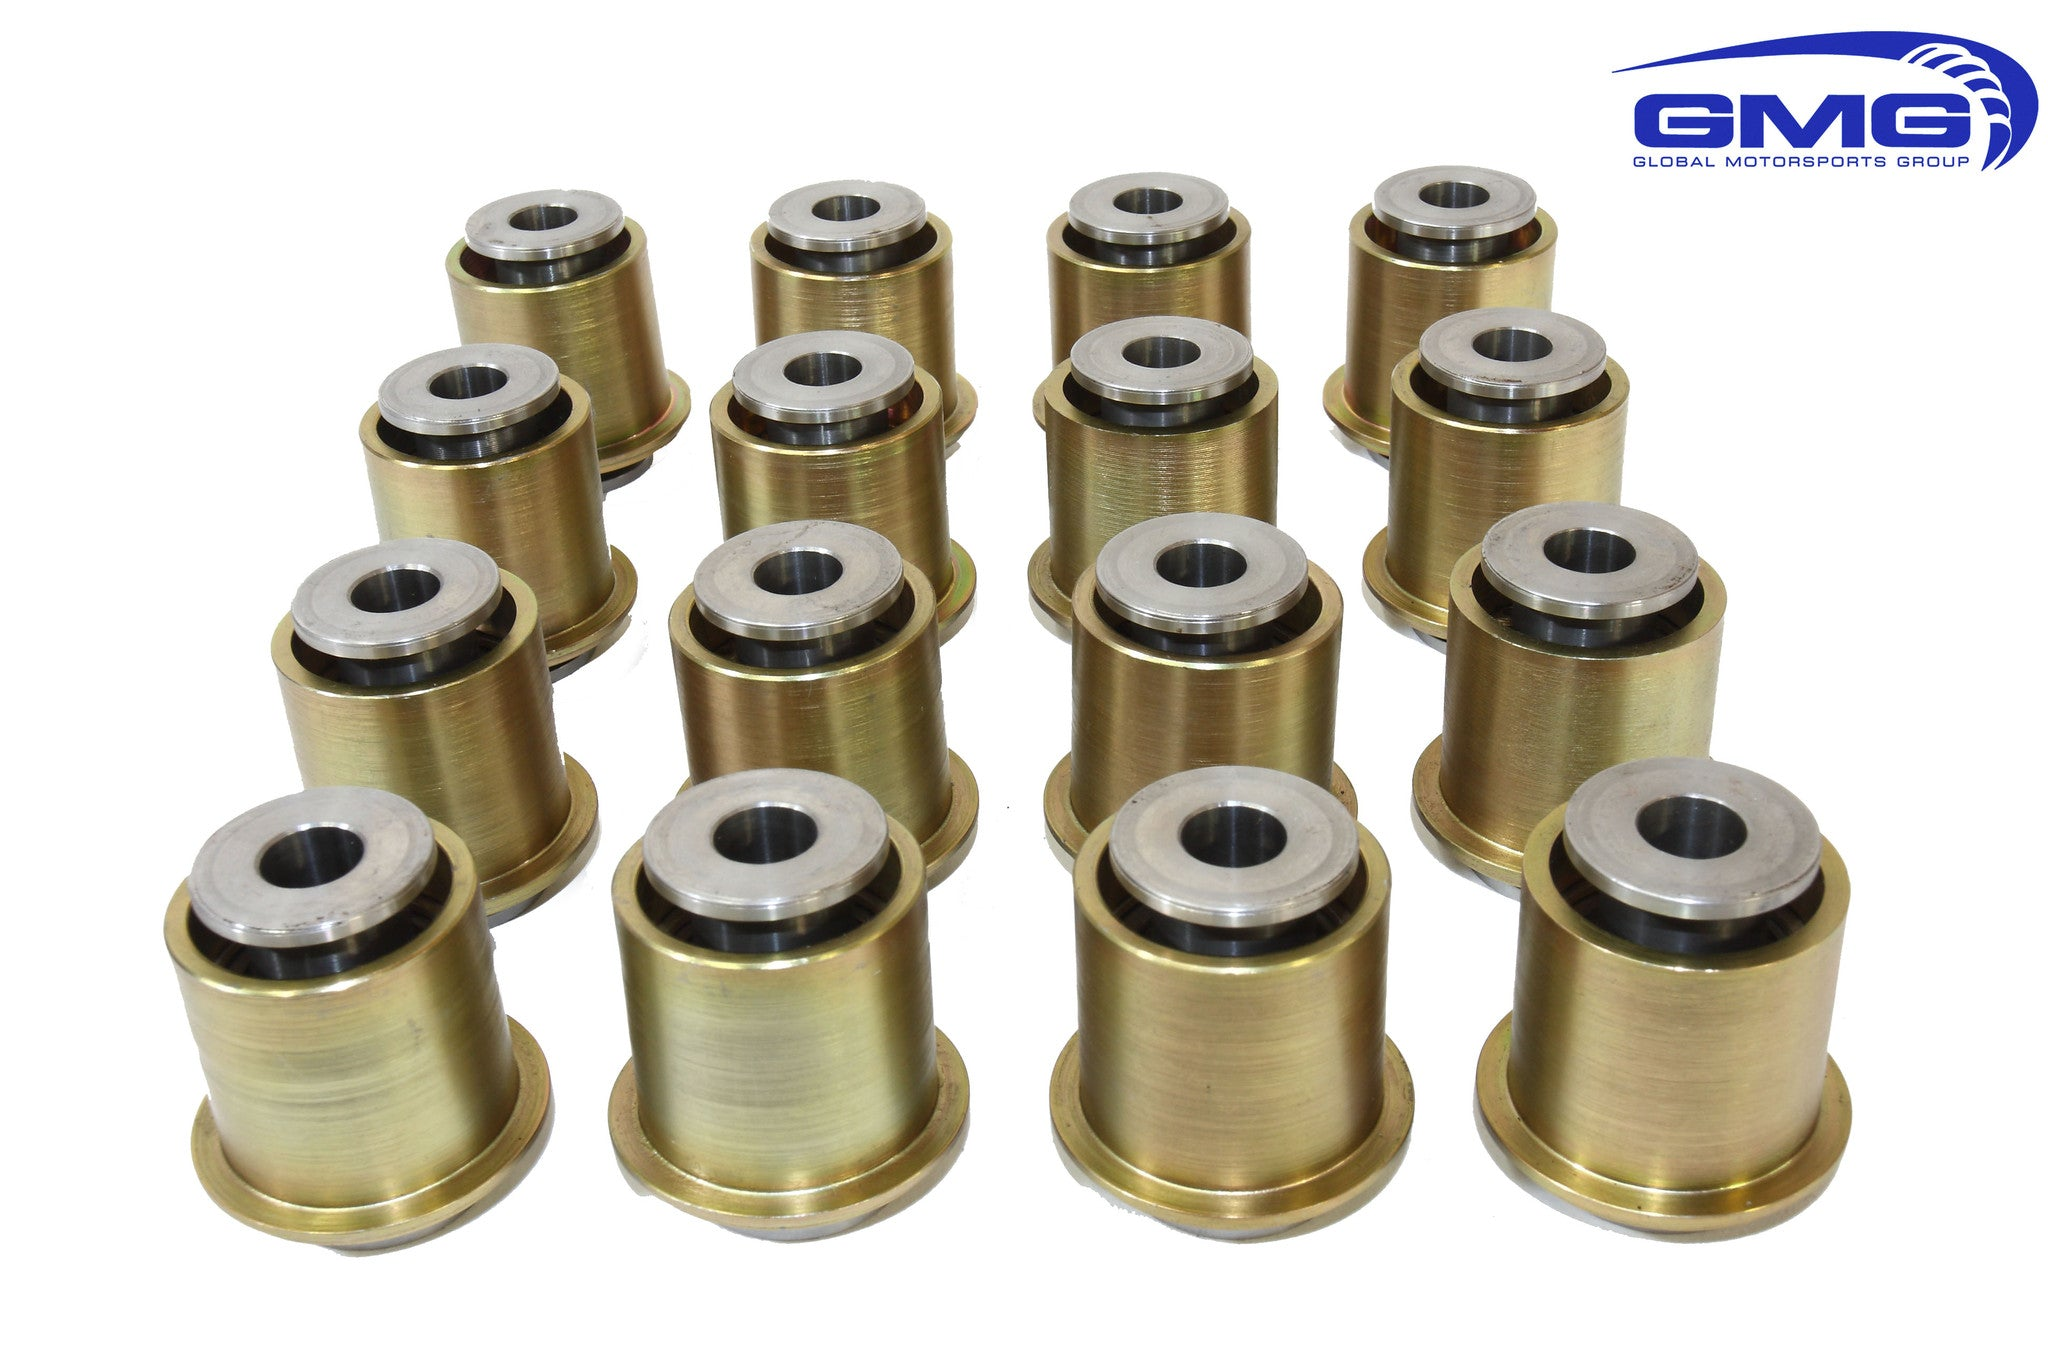 R8 GMG Spherical A-Arm Bushing Set